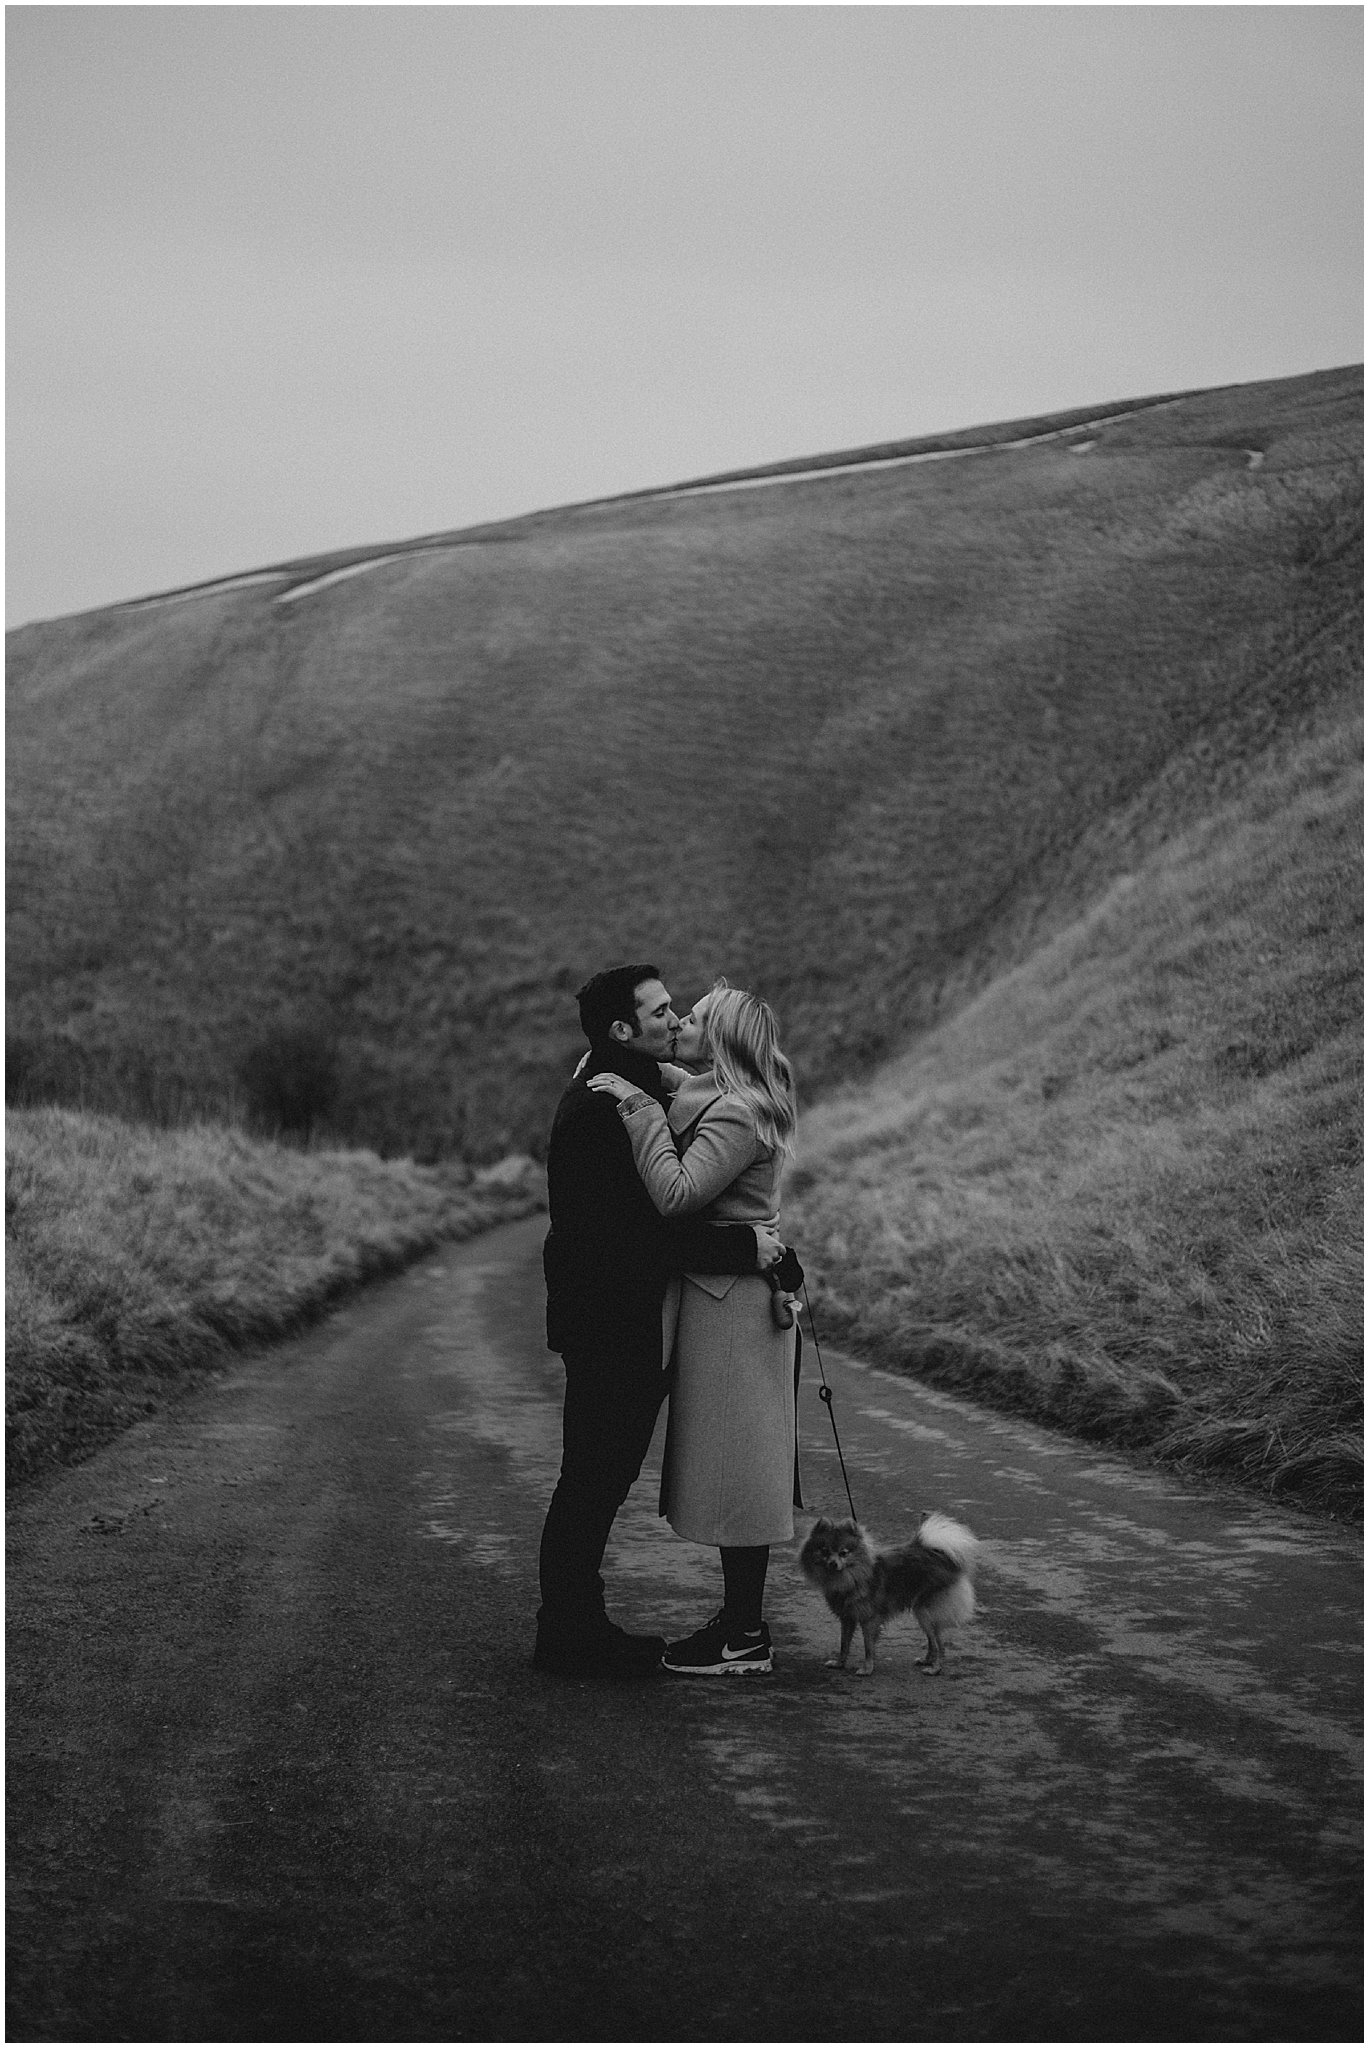 Mike & Charley_s Winter Engagement Shoot Wiltshire-46.jpg